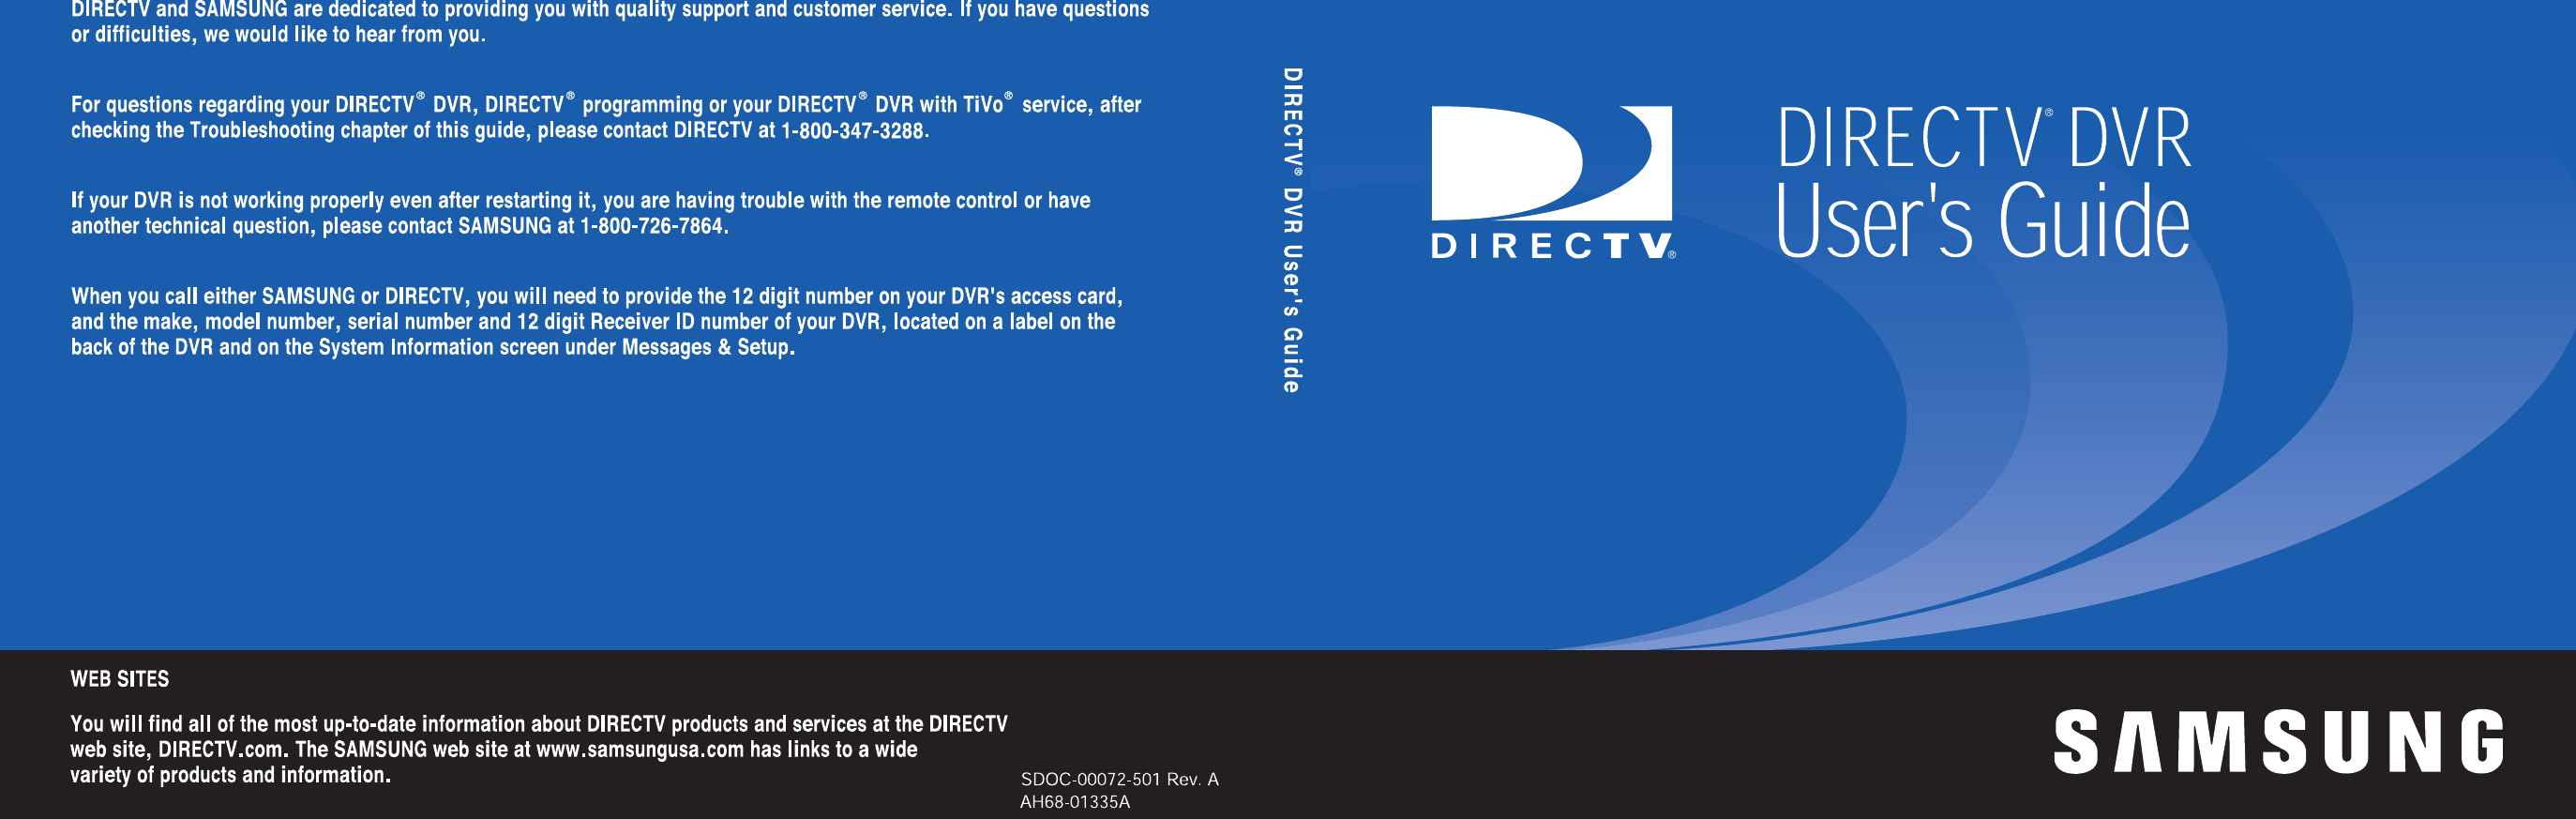 samsung electronics co directv directv dvr user manual users guide rh usermanual wiki DirecTV Guide SD DirecTV Guide SD